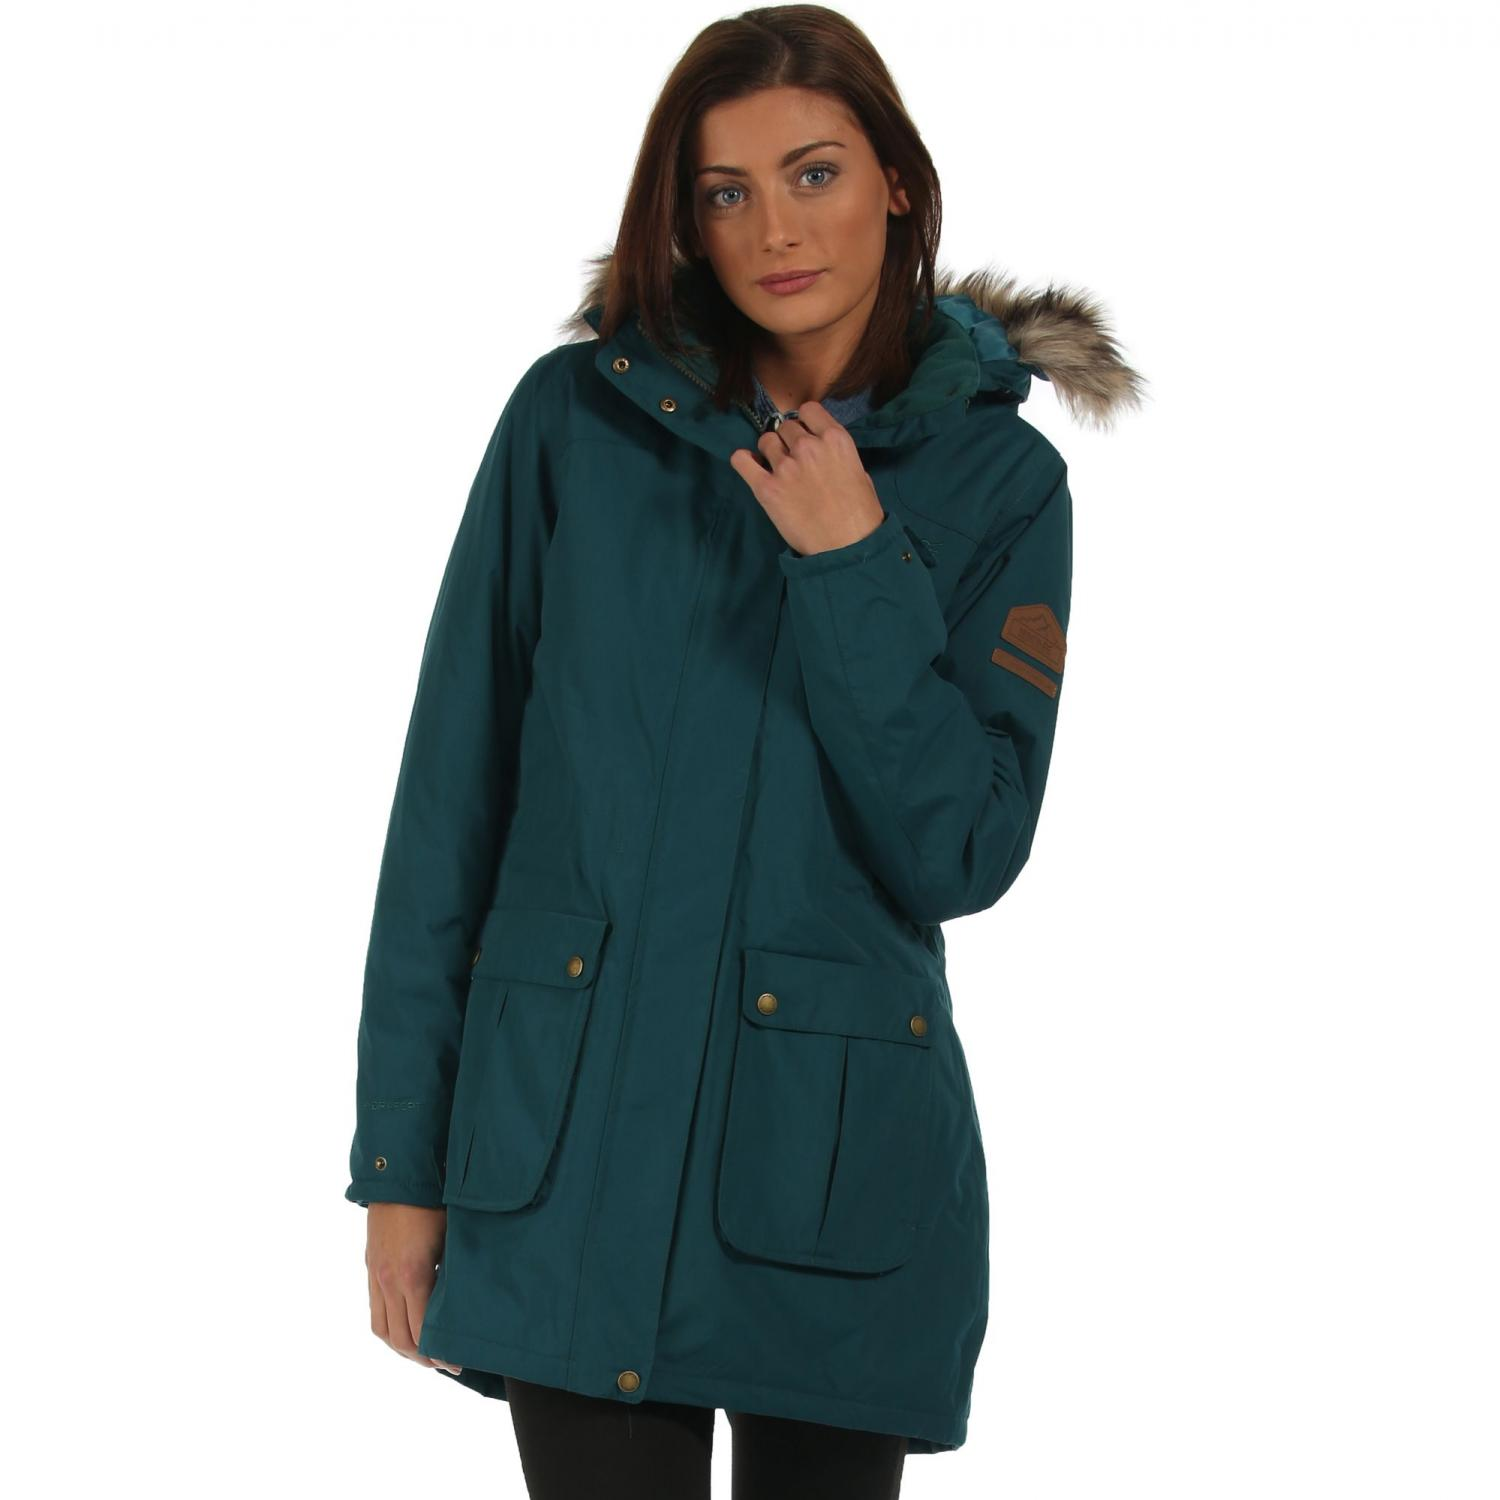 Schima Parka Jacket Deep Teal